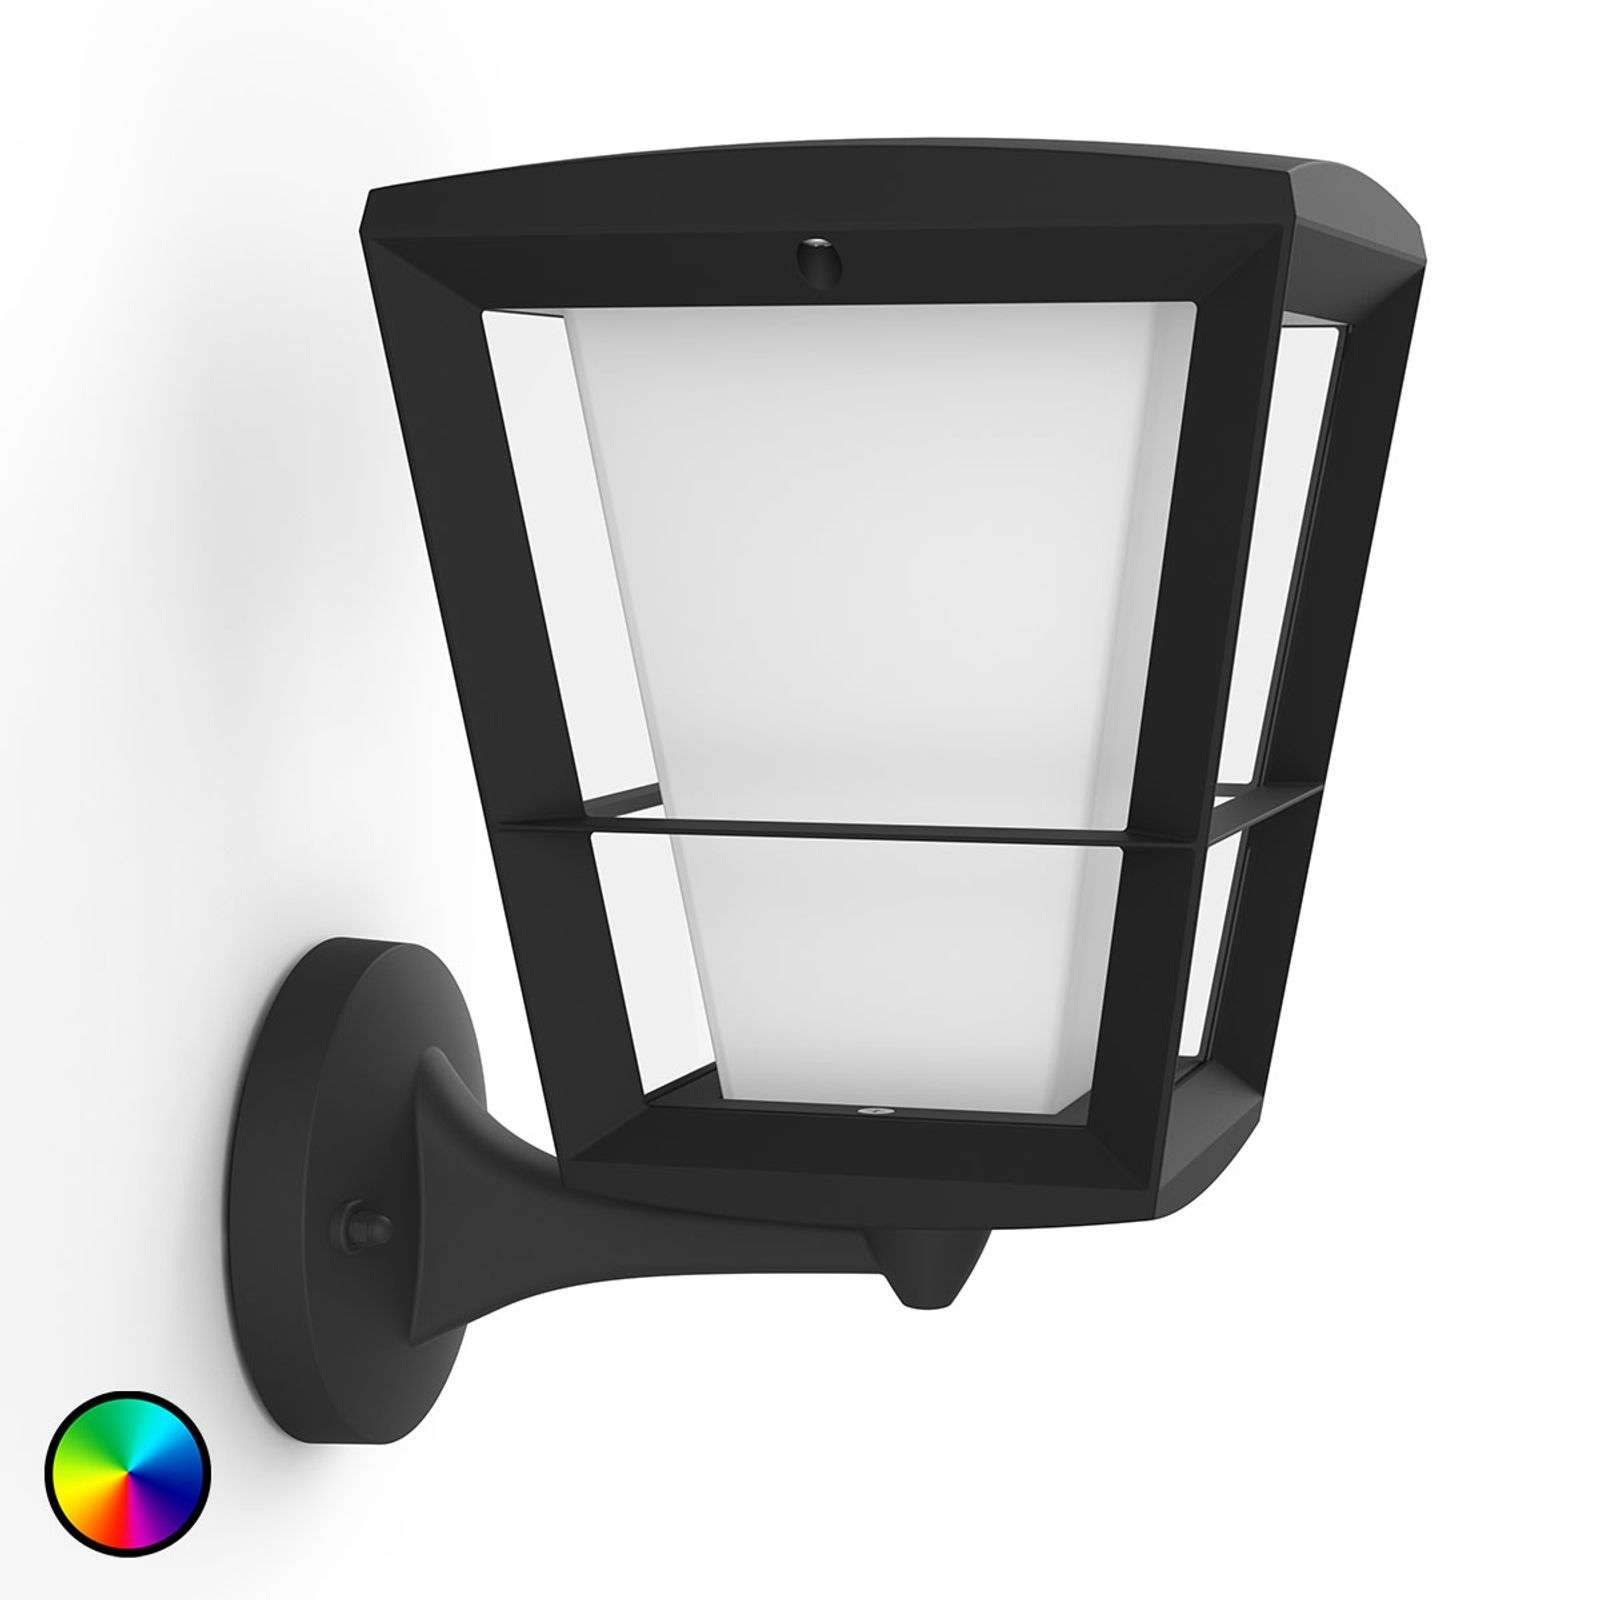 Philips Hue White+Color Econic wandlamp boven